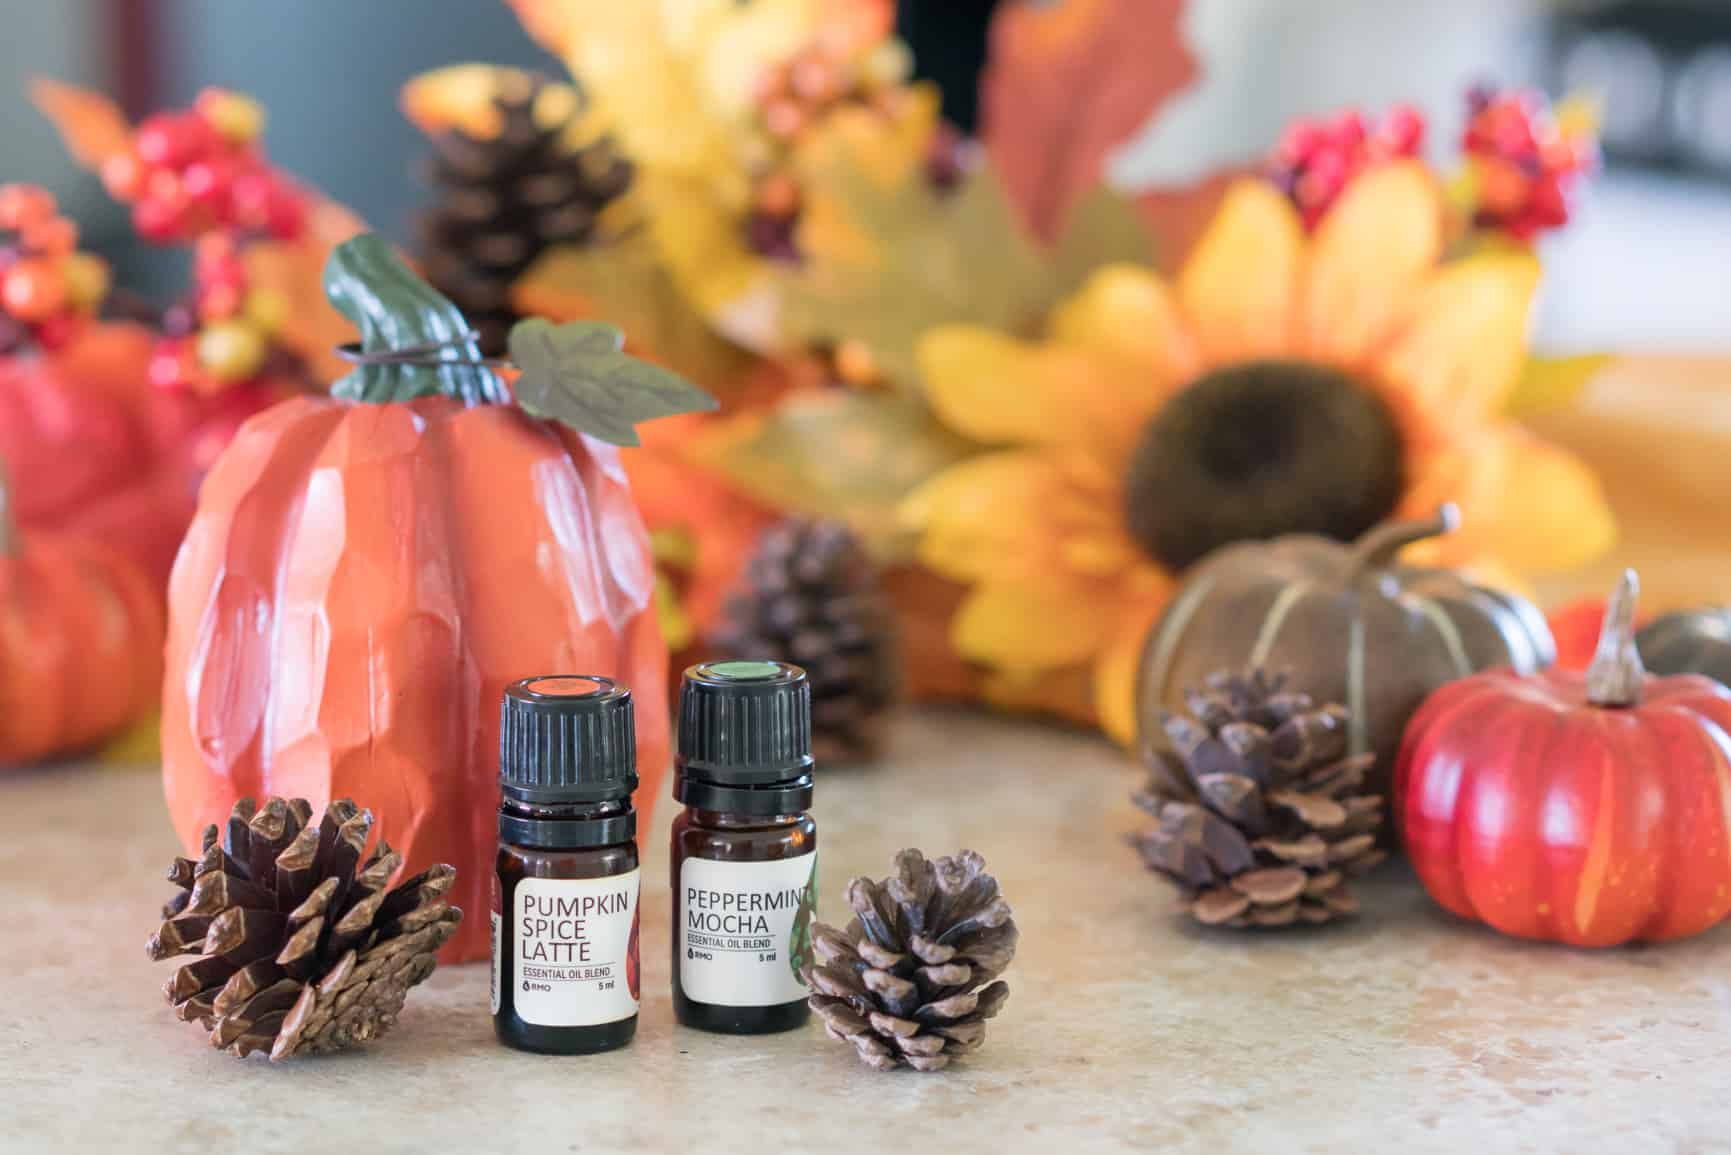 Pumpkin Spice Latte Non-Toxic Cleaning Spray